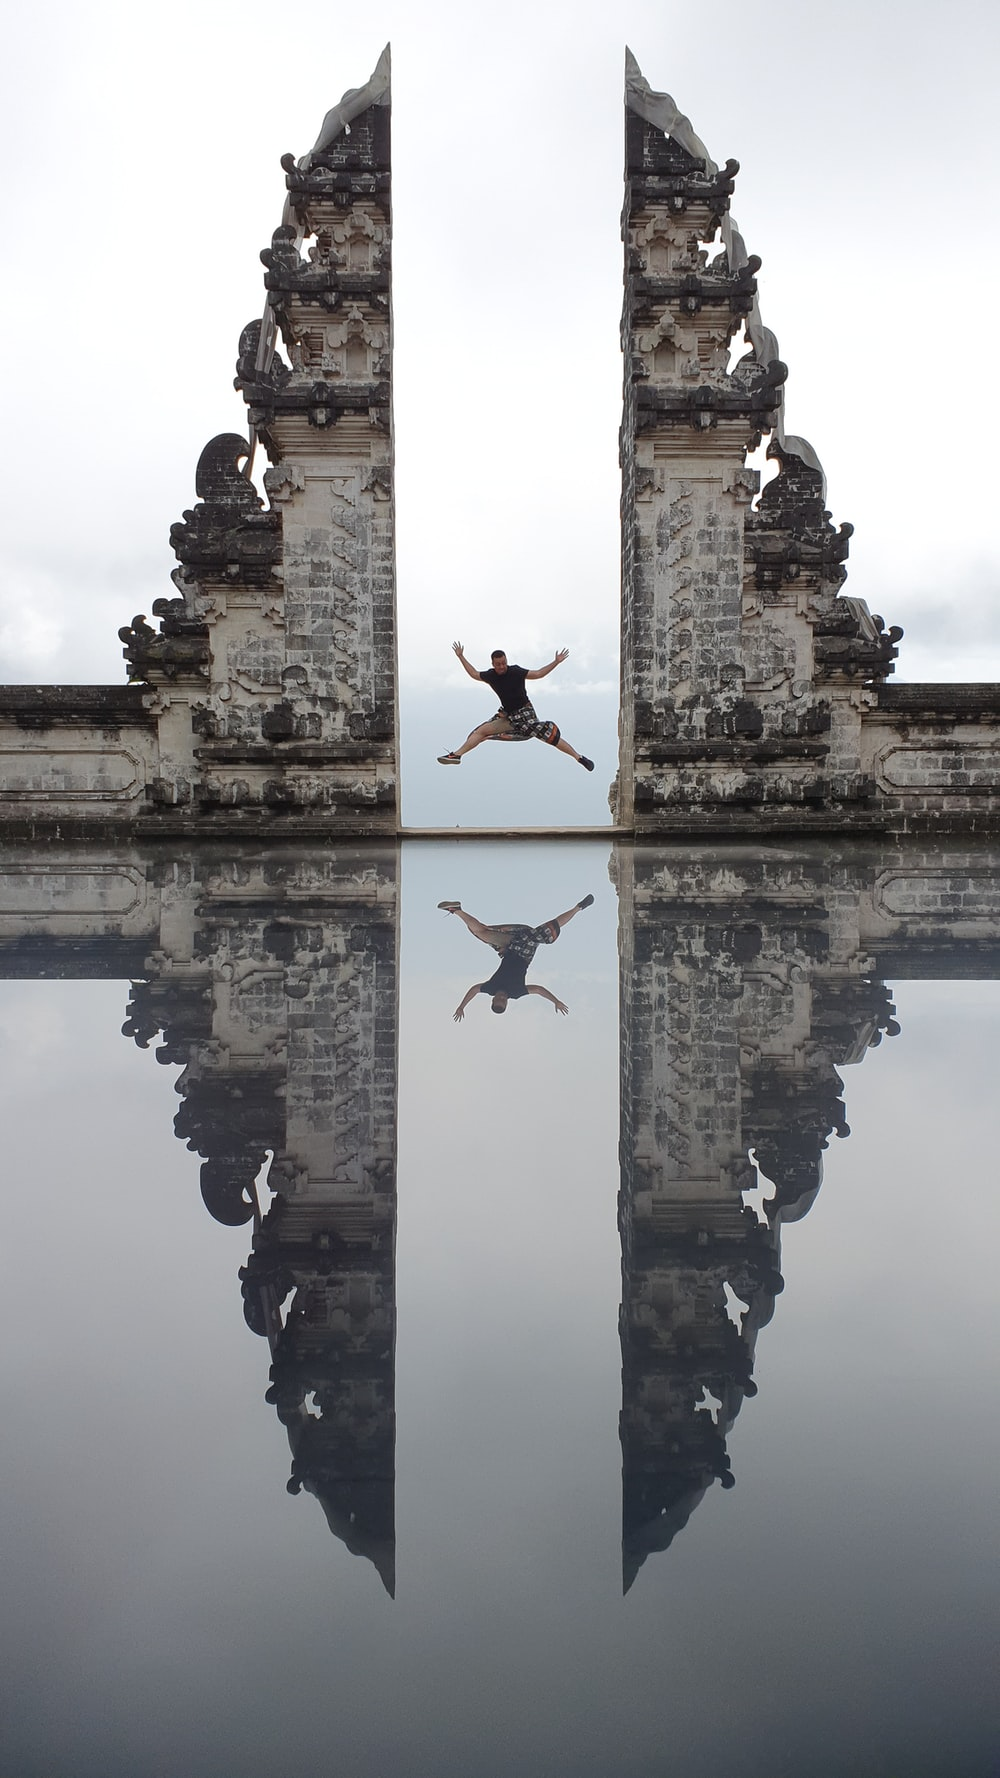 person jumping above water